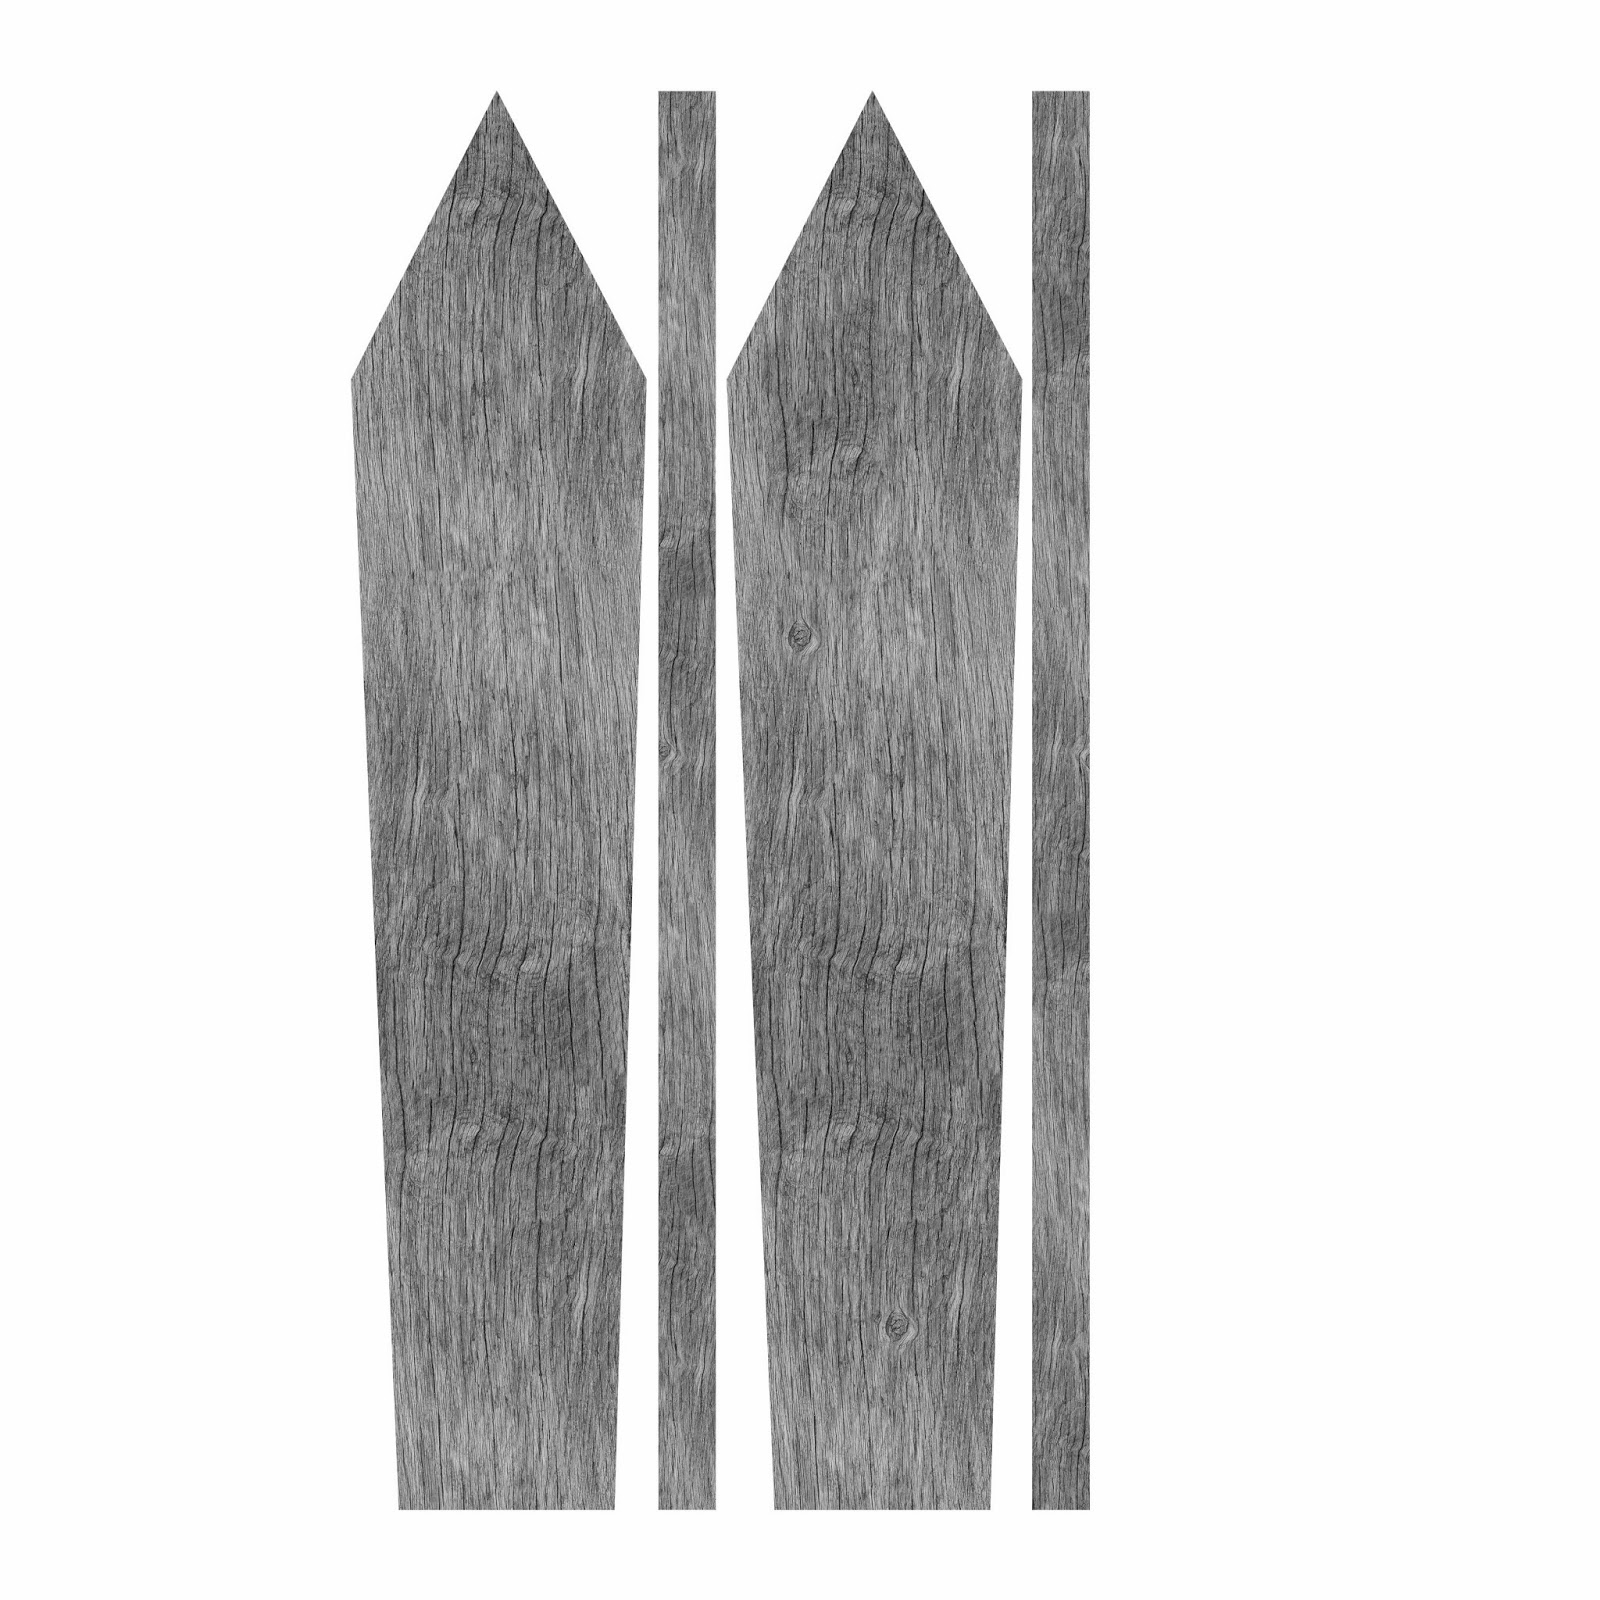 wood picket fence texture. I Started With A Wood Texture That Downloaded From Cgtextures.com. Picket Fence